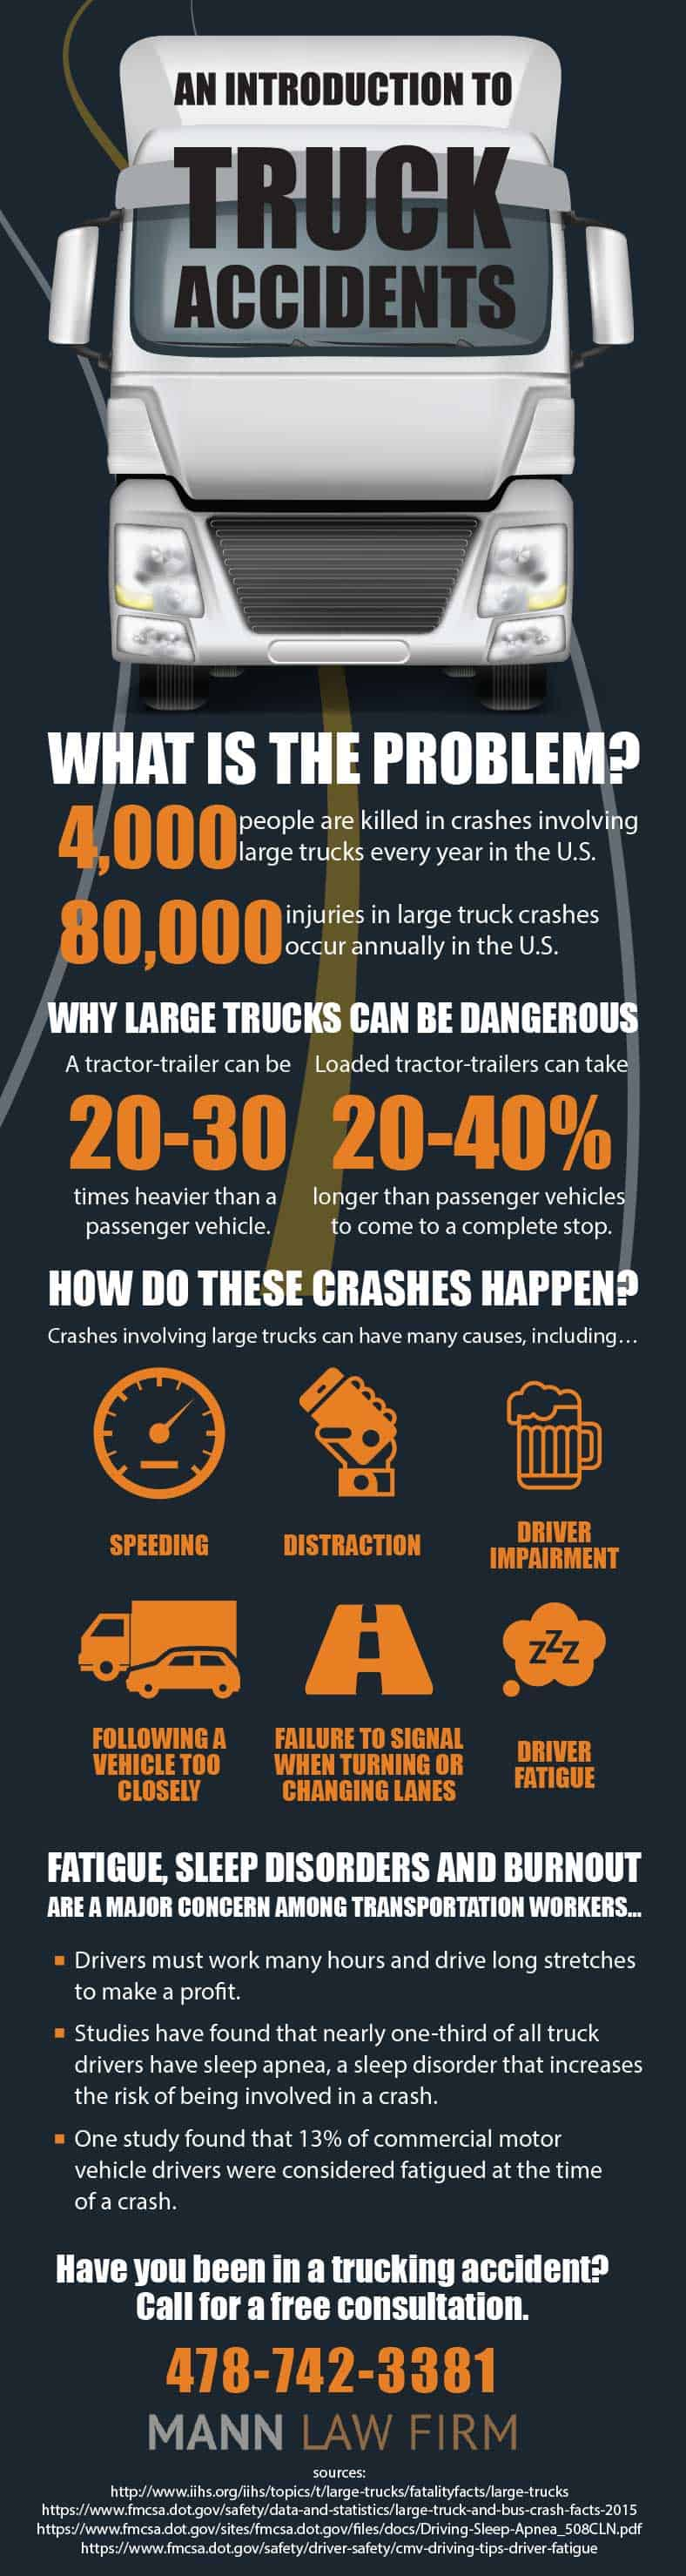 Mann Truck Accident Infographic